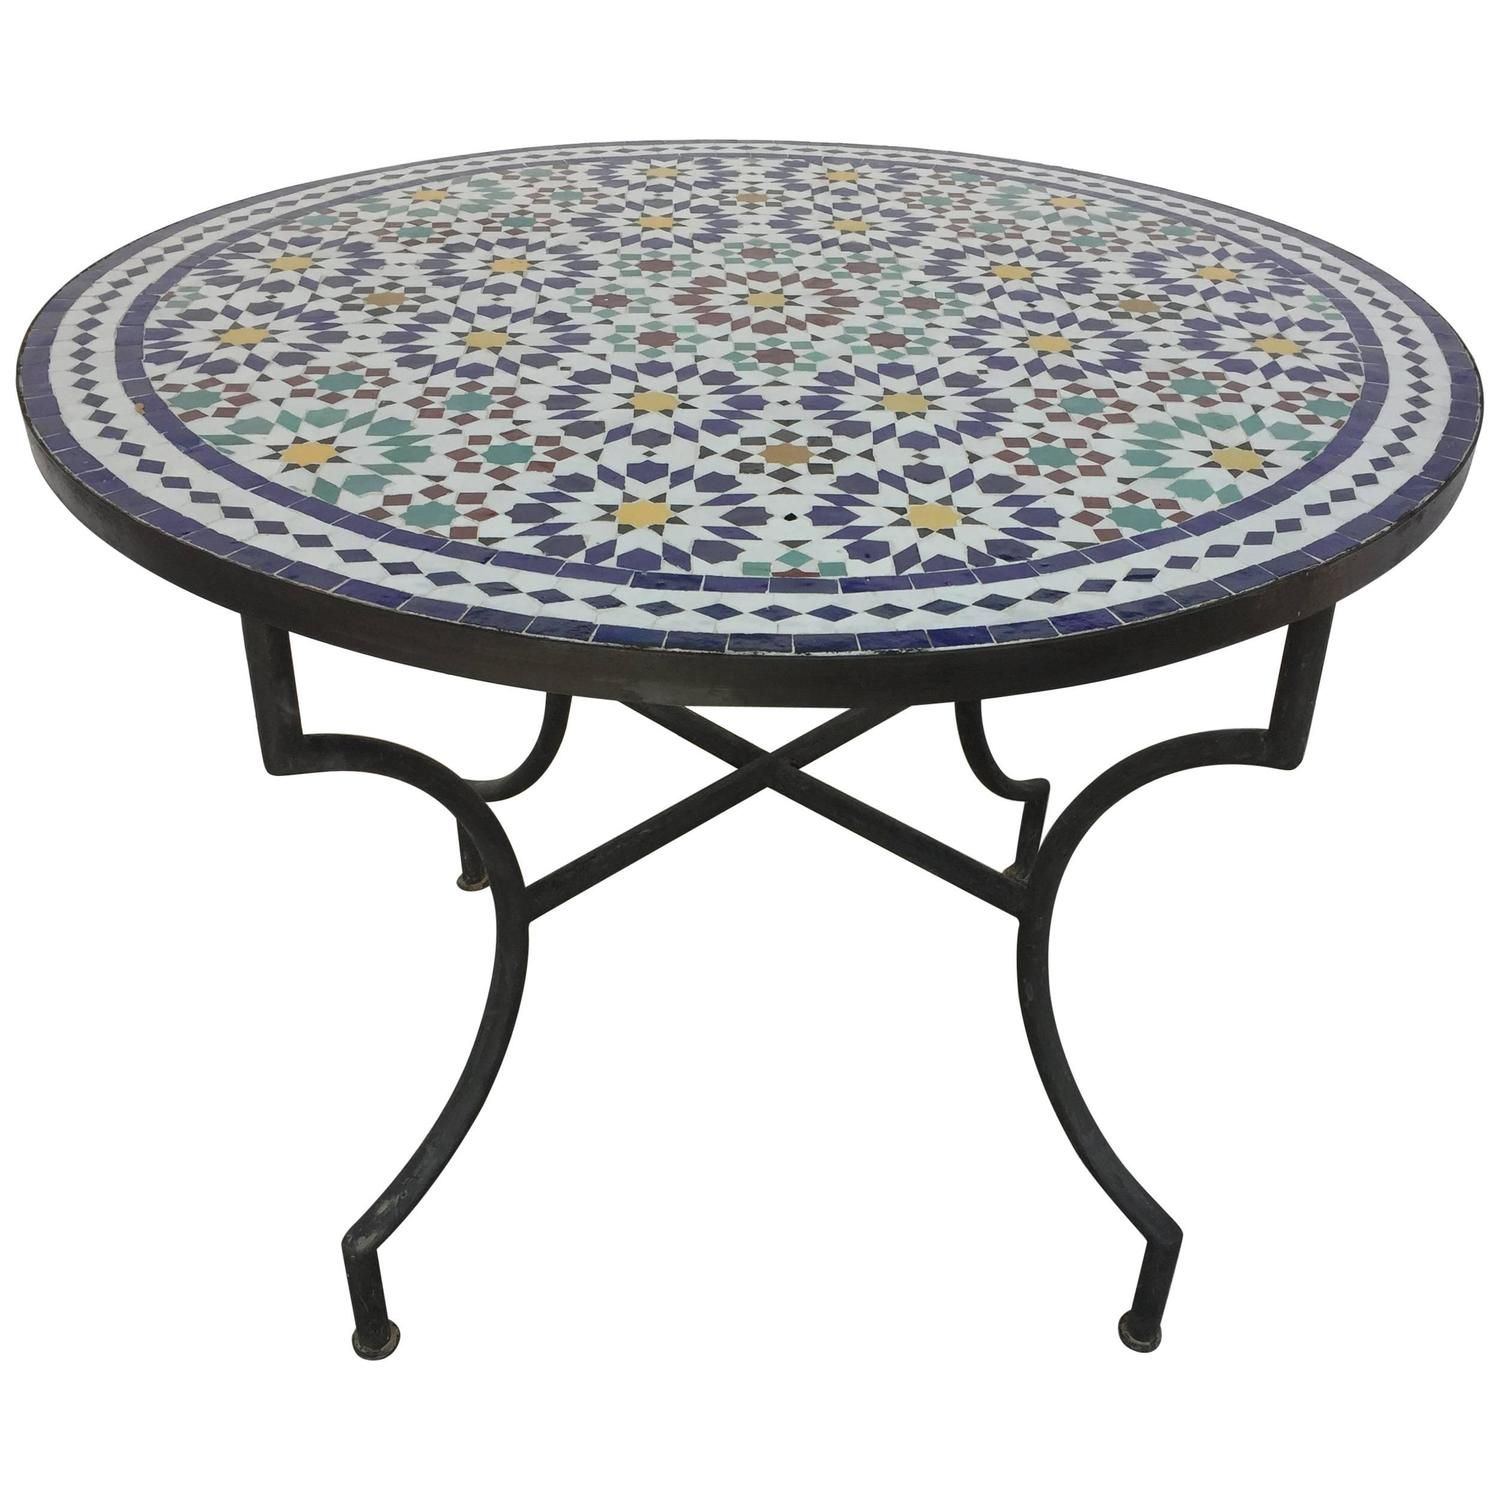 Moroccan Outdoor Mosaic Tile Table From Fez In Traditional Moorish